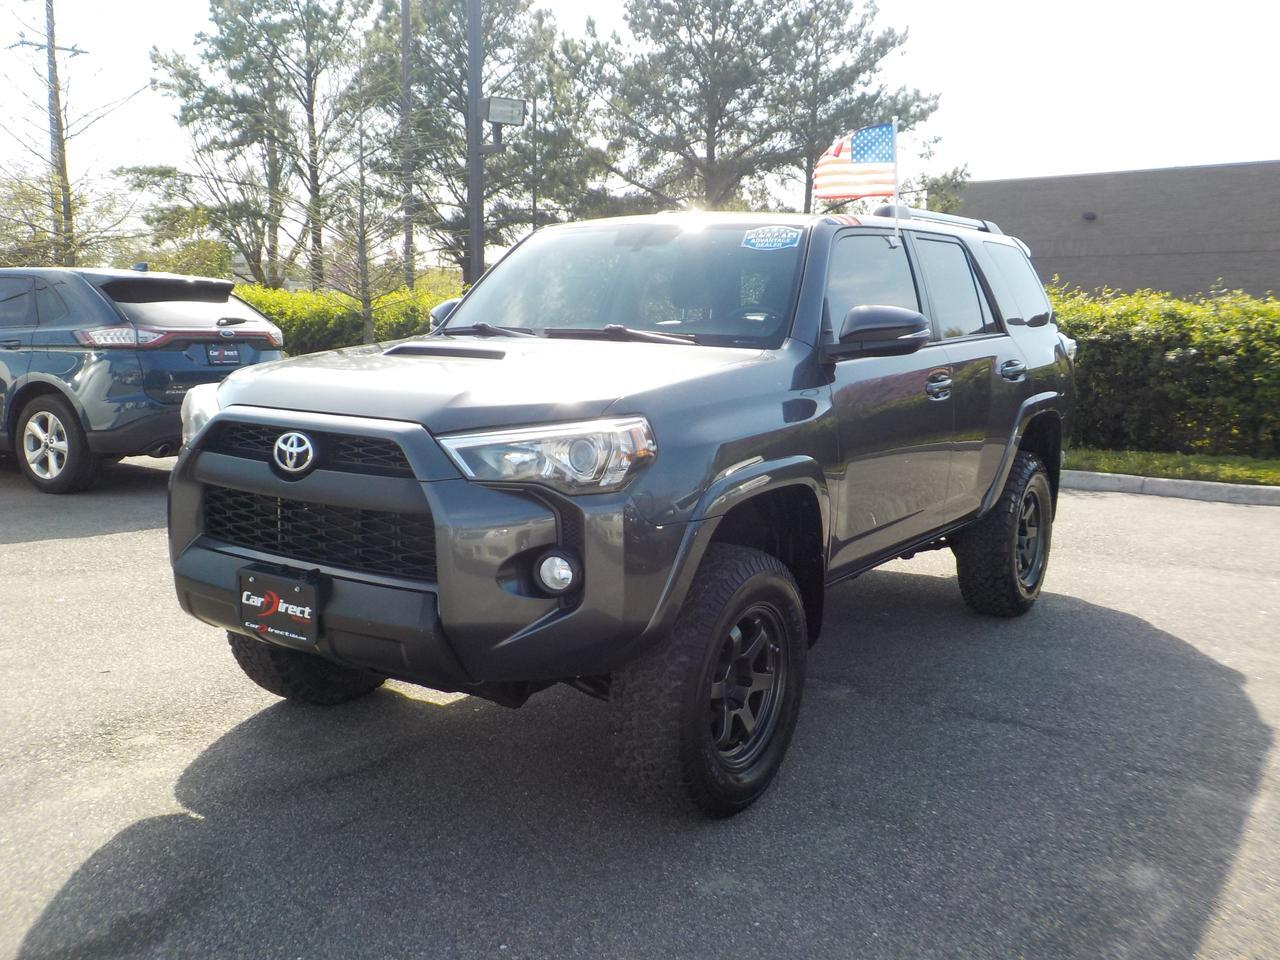 2014 TOYOTA 4RUNNER TRAIL 4X4, ONE OWNER, GRACENOTE SOUND SYSTEM, DVD ENTERTAINMENT, LEATHER HEATED SEATS, TOW PACKAGE!